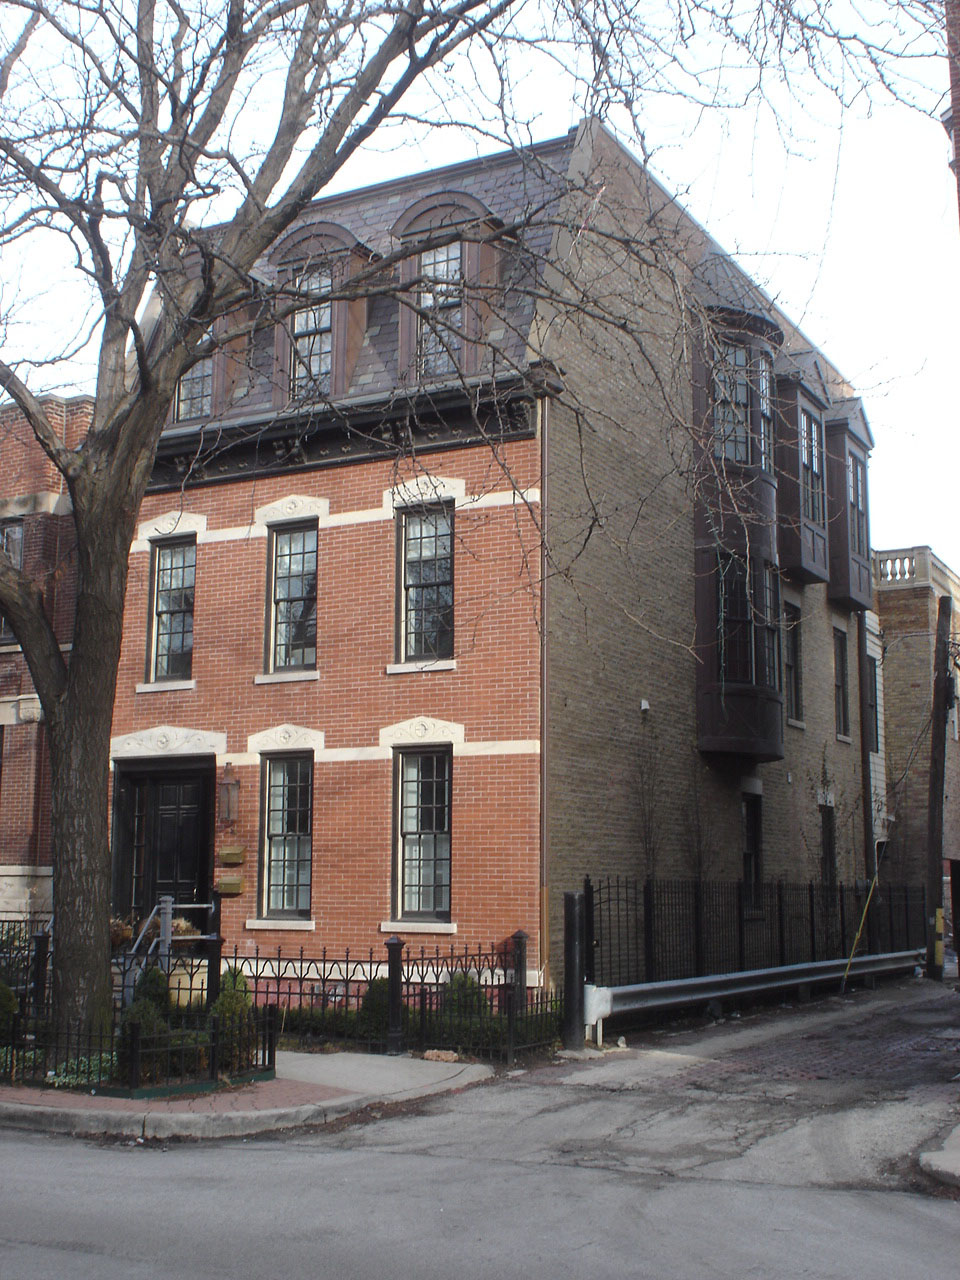 Single Family House on Racine in Lincoln Park, Various additions including 3rd floor